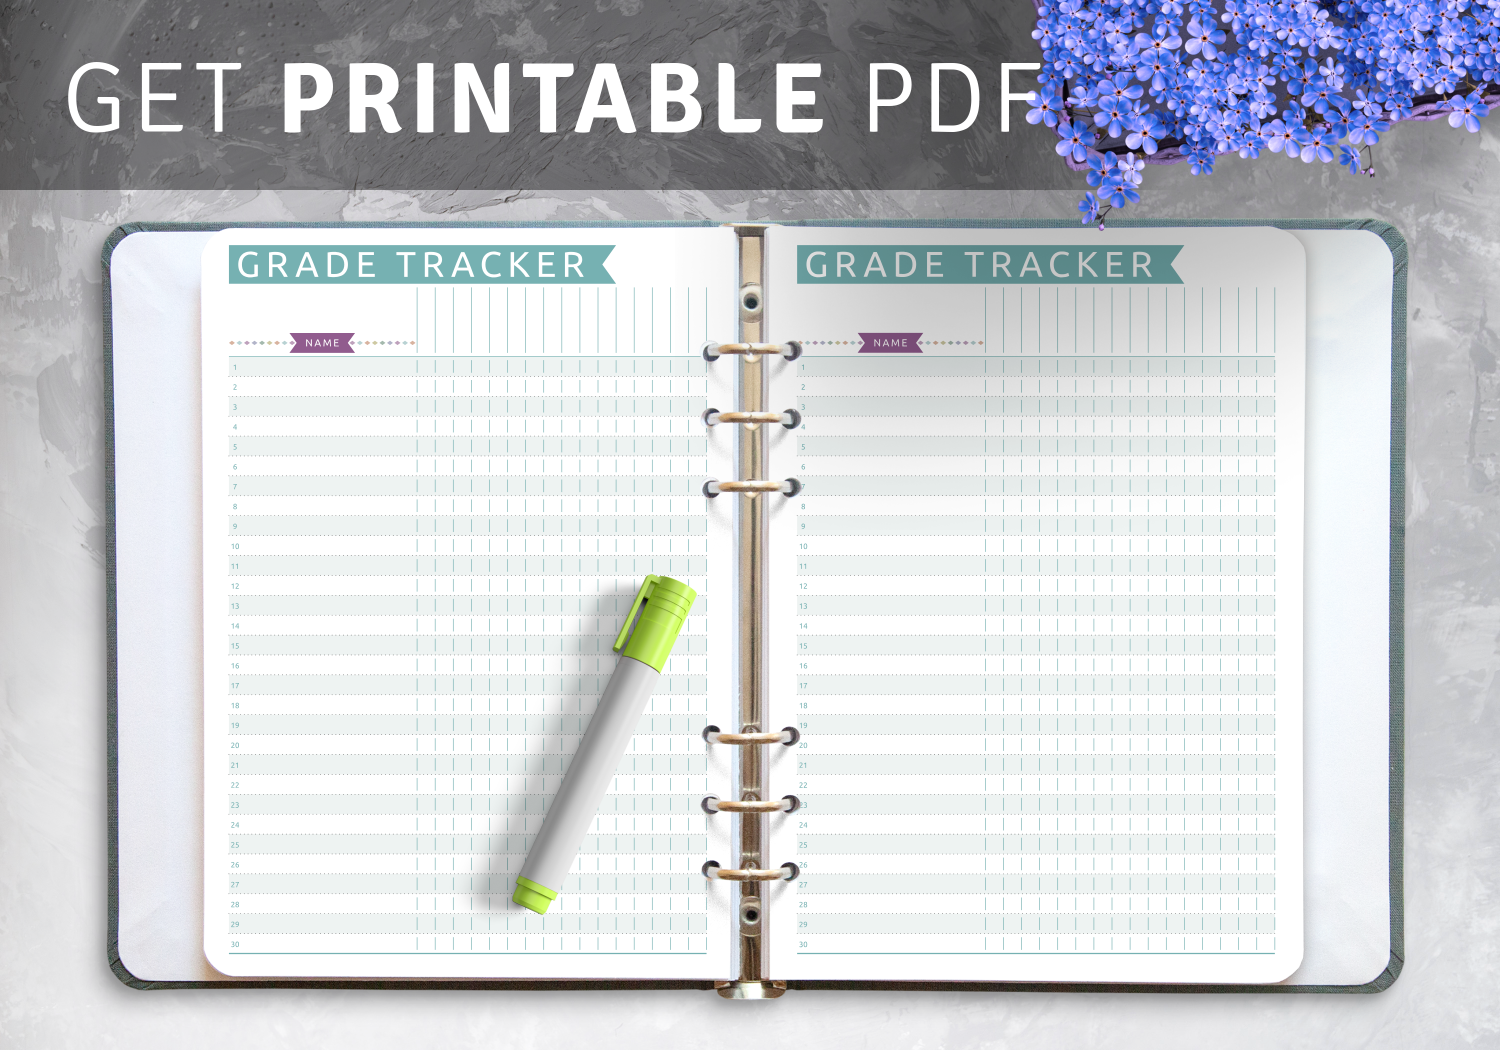 Download Printable Gradebook Template Casual Style Pdf